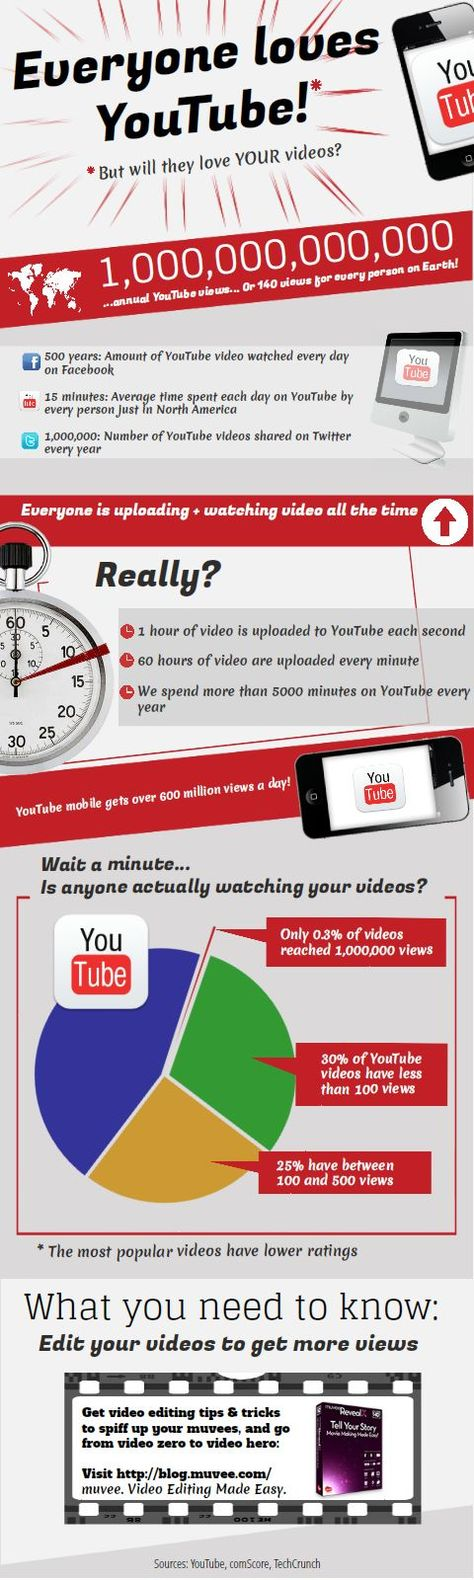 TubeBuddy | The Premier YouTube Channel Management and Optimization Toolkit